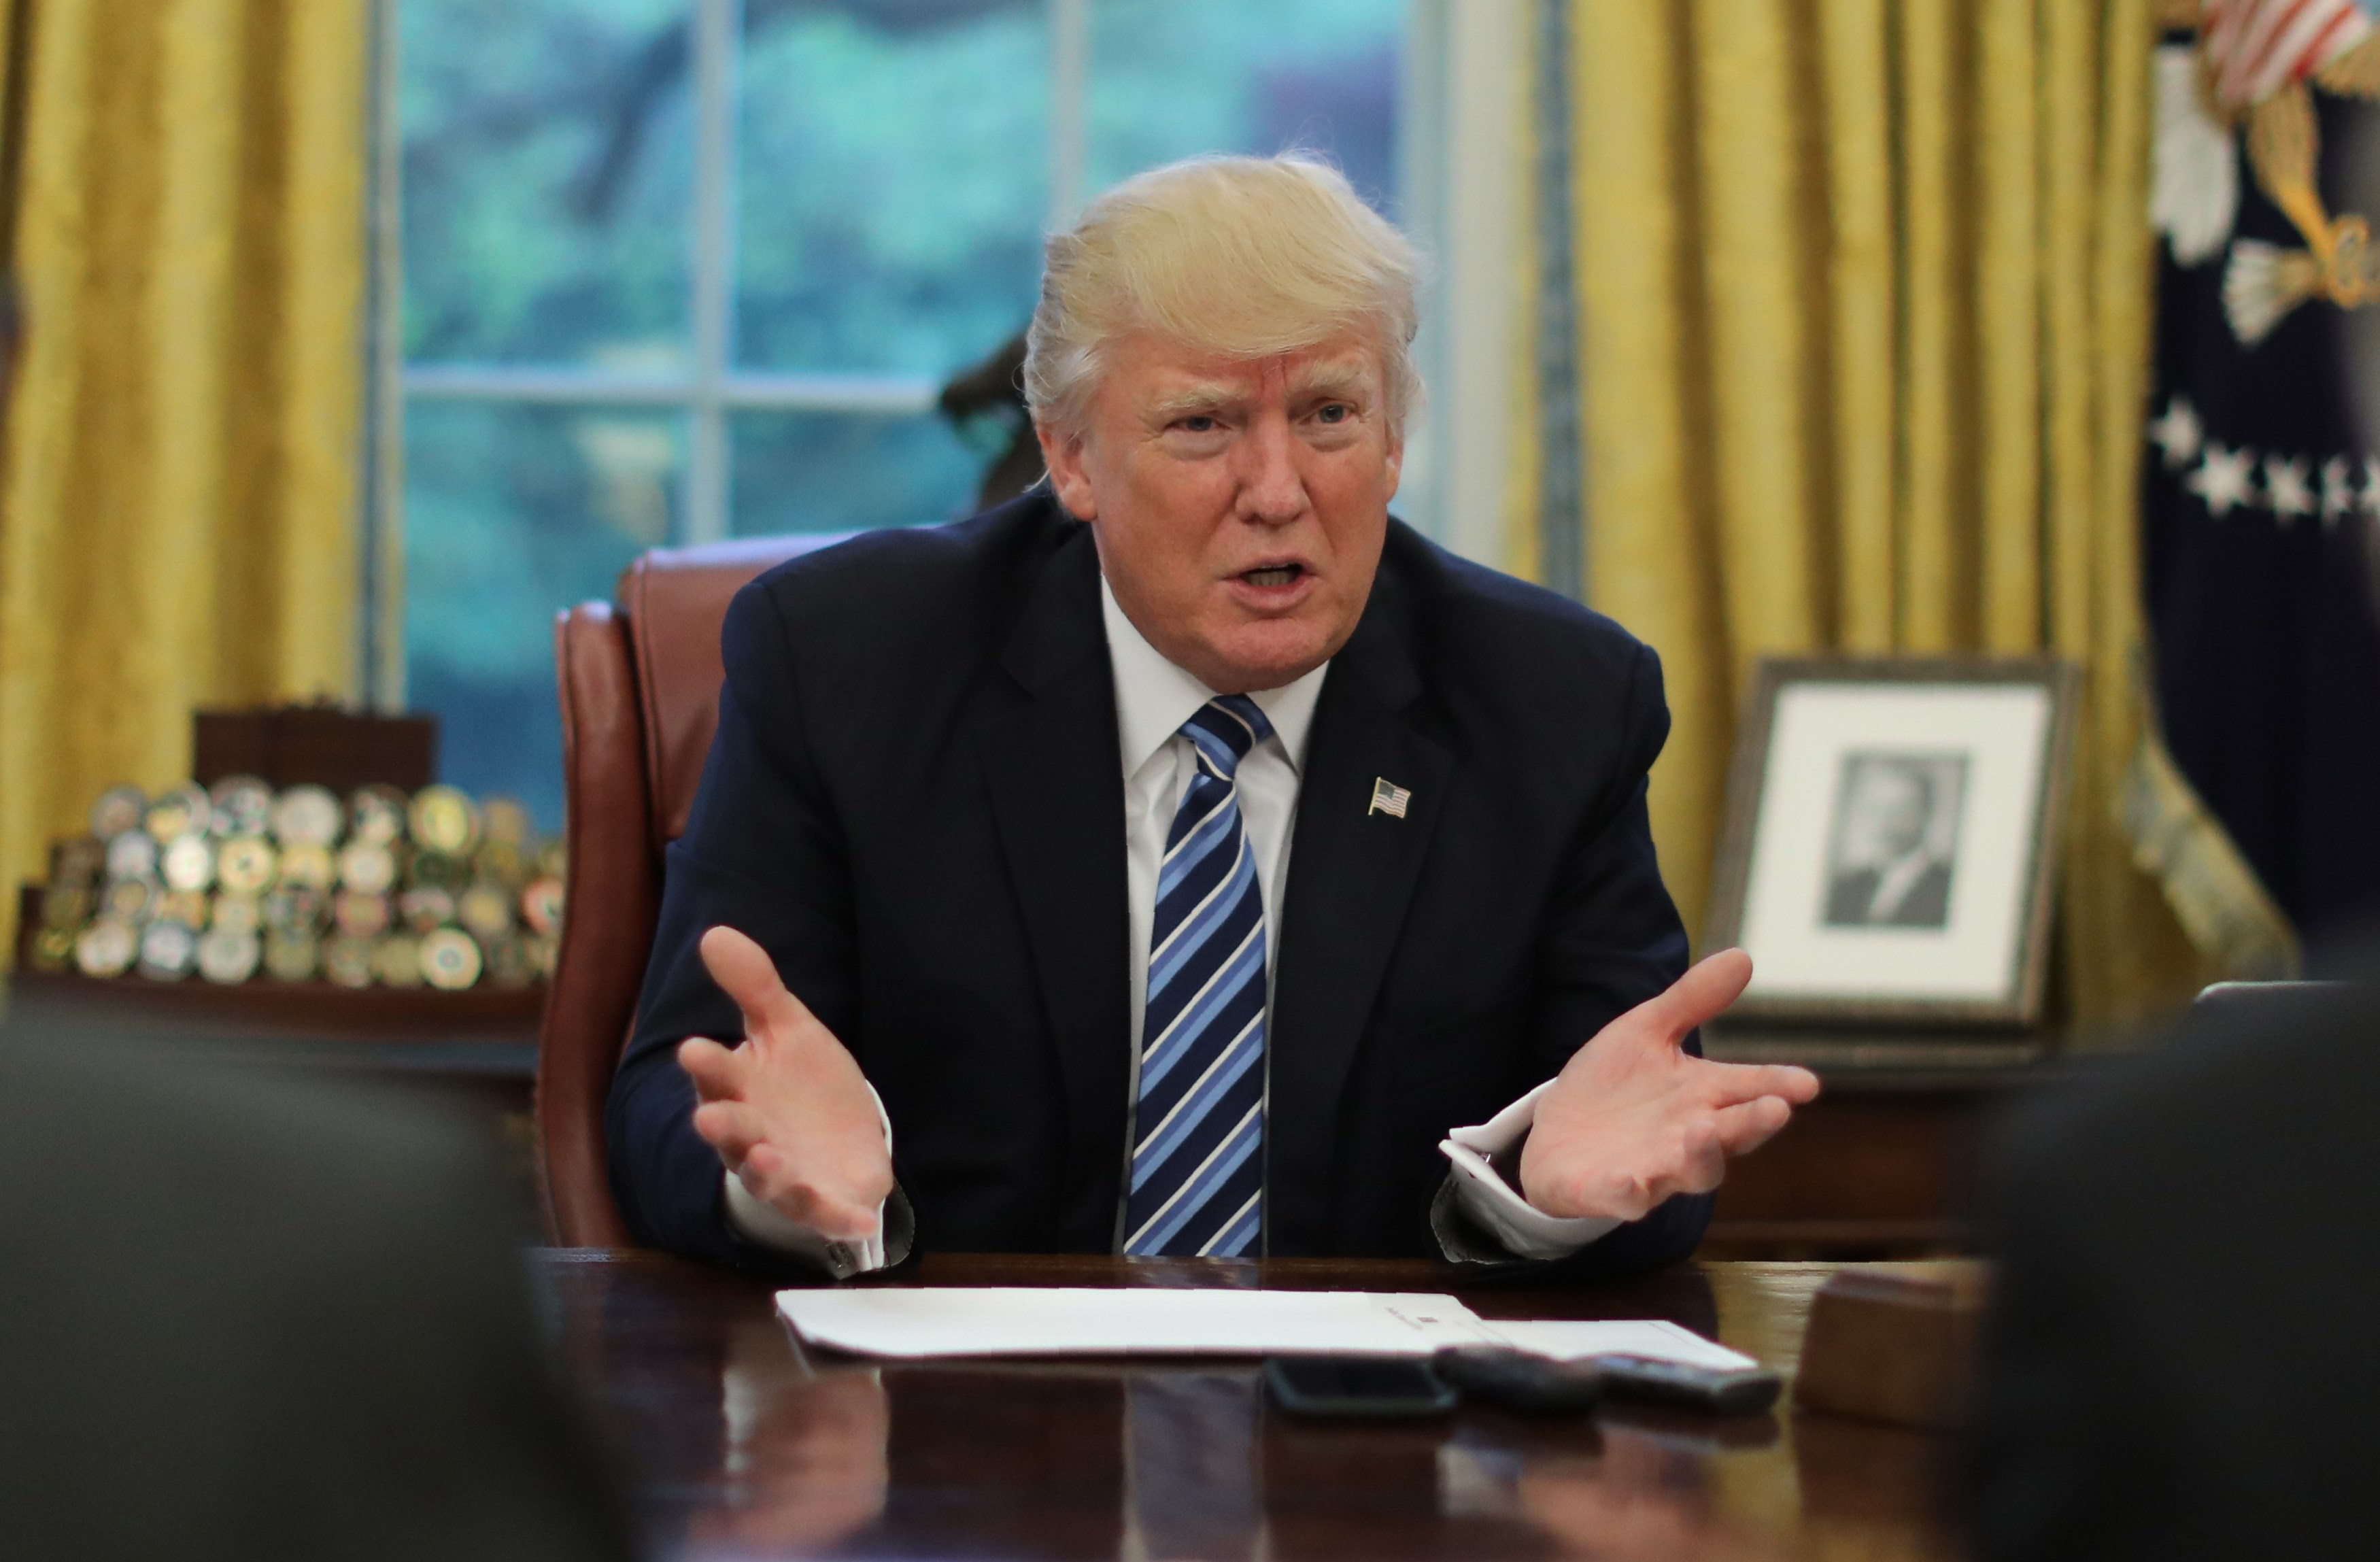 President Donald Trump speaks during an interview with Reuters in the Oval Office of the White House in Washington, U.S., April 27, 2017. (REUTERS/Carlos Barria)